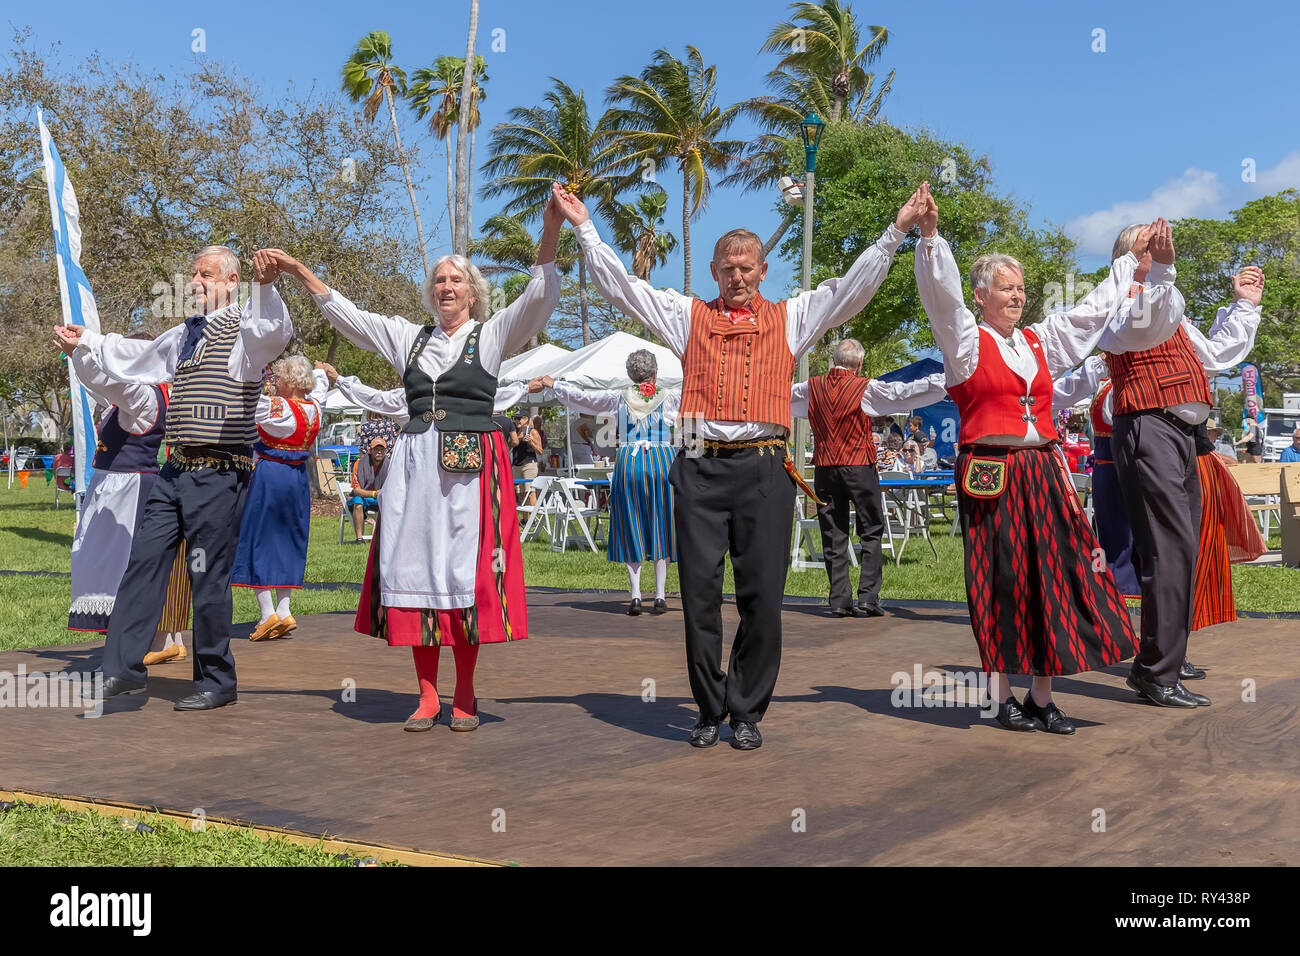 Lake Worth, Florida, USA March 3, 2019, Midnight Sun Festival Celebrating Finnish Culture. The couples form an outer circle holding hands up high. - Stock Image